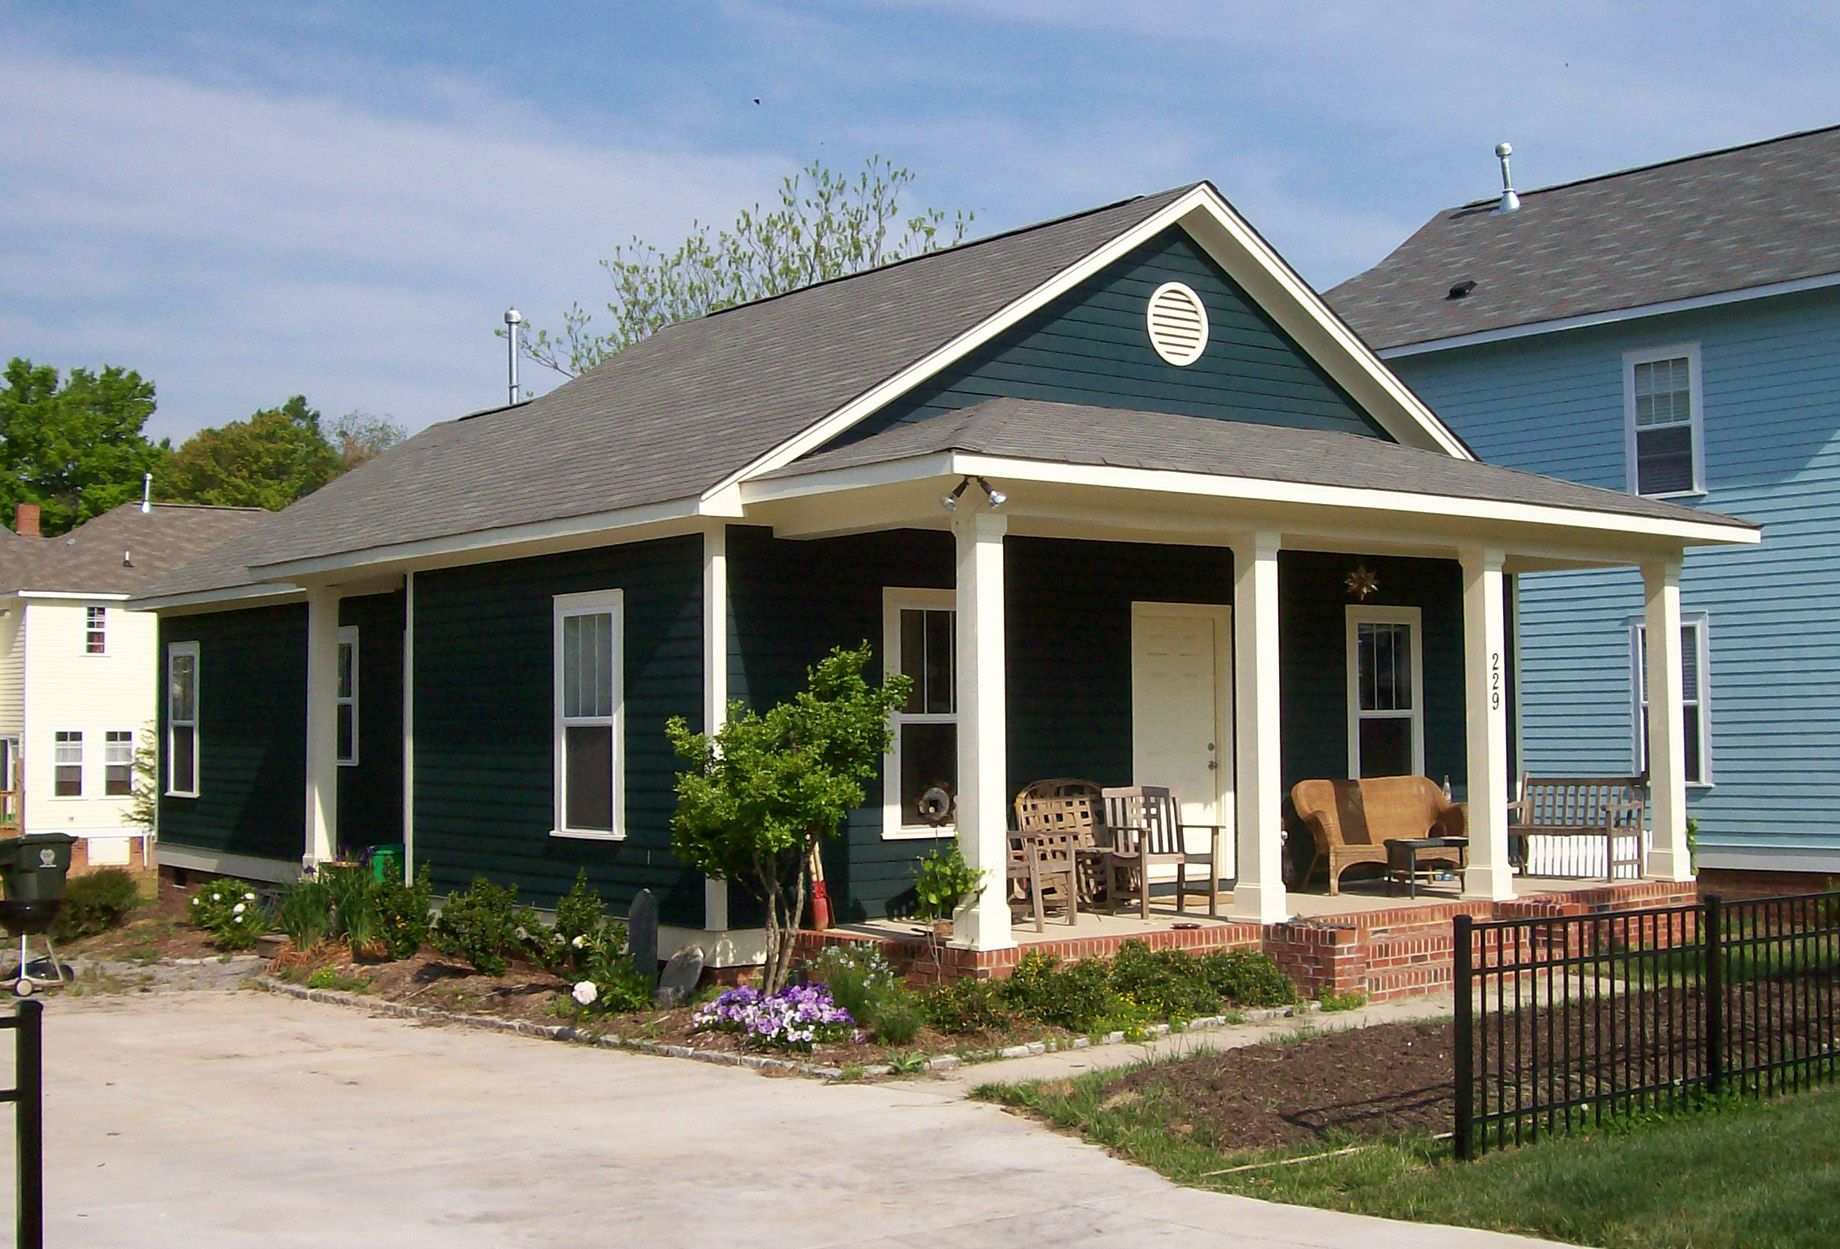 Plan 10045tt Classic Single Story Bungalow Craftsman Bungalow House Plans Cottage House Plans Bungalow House Plans